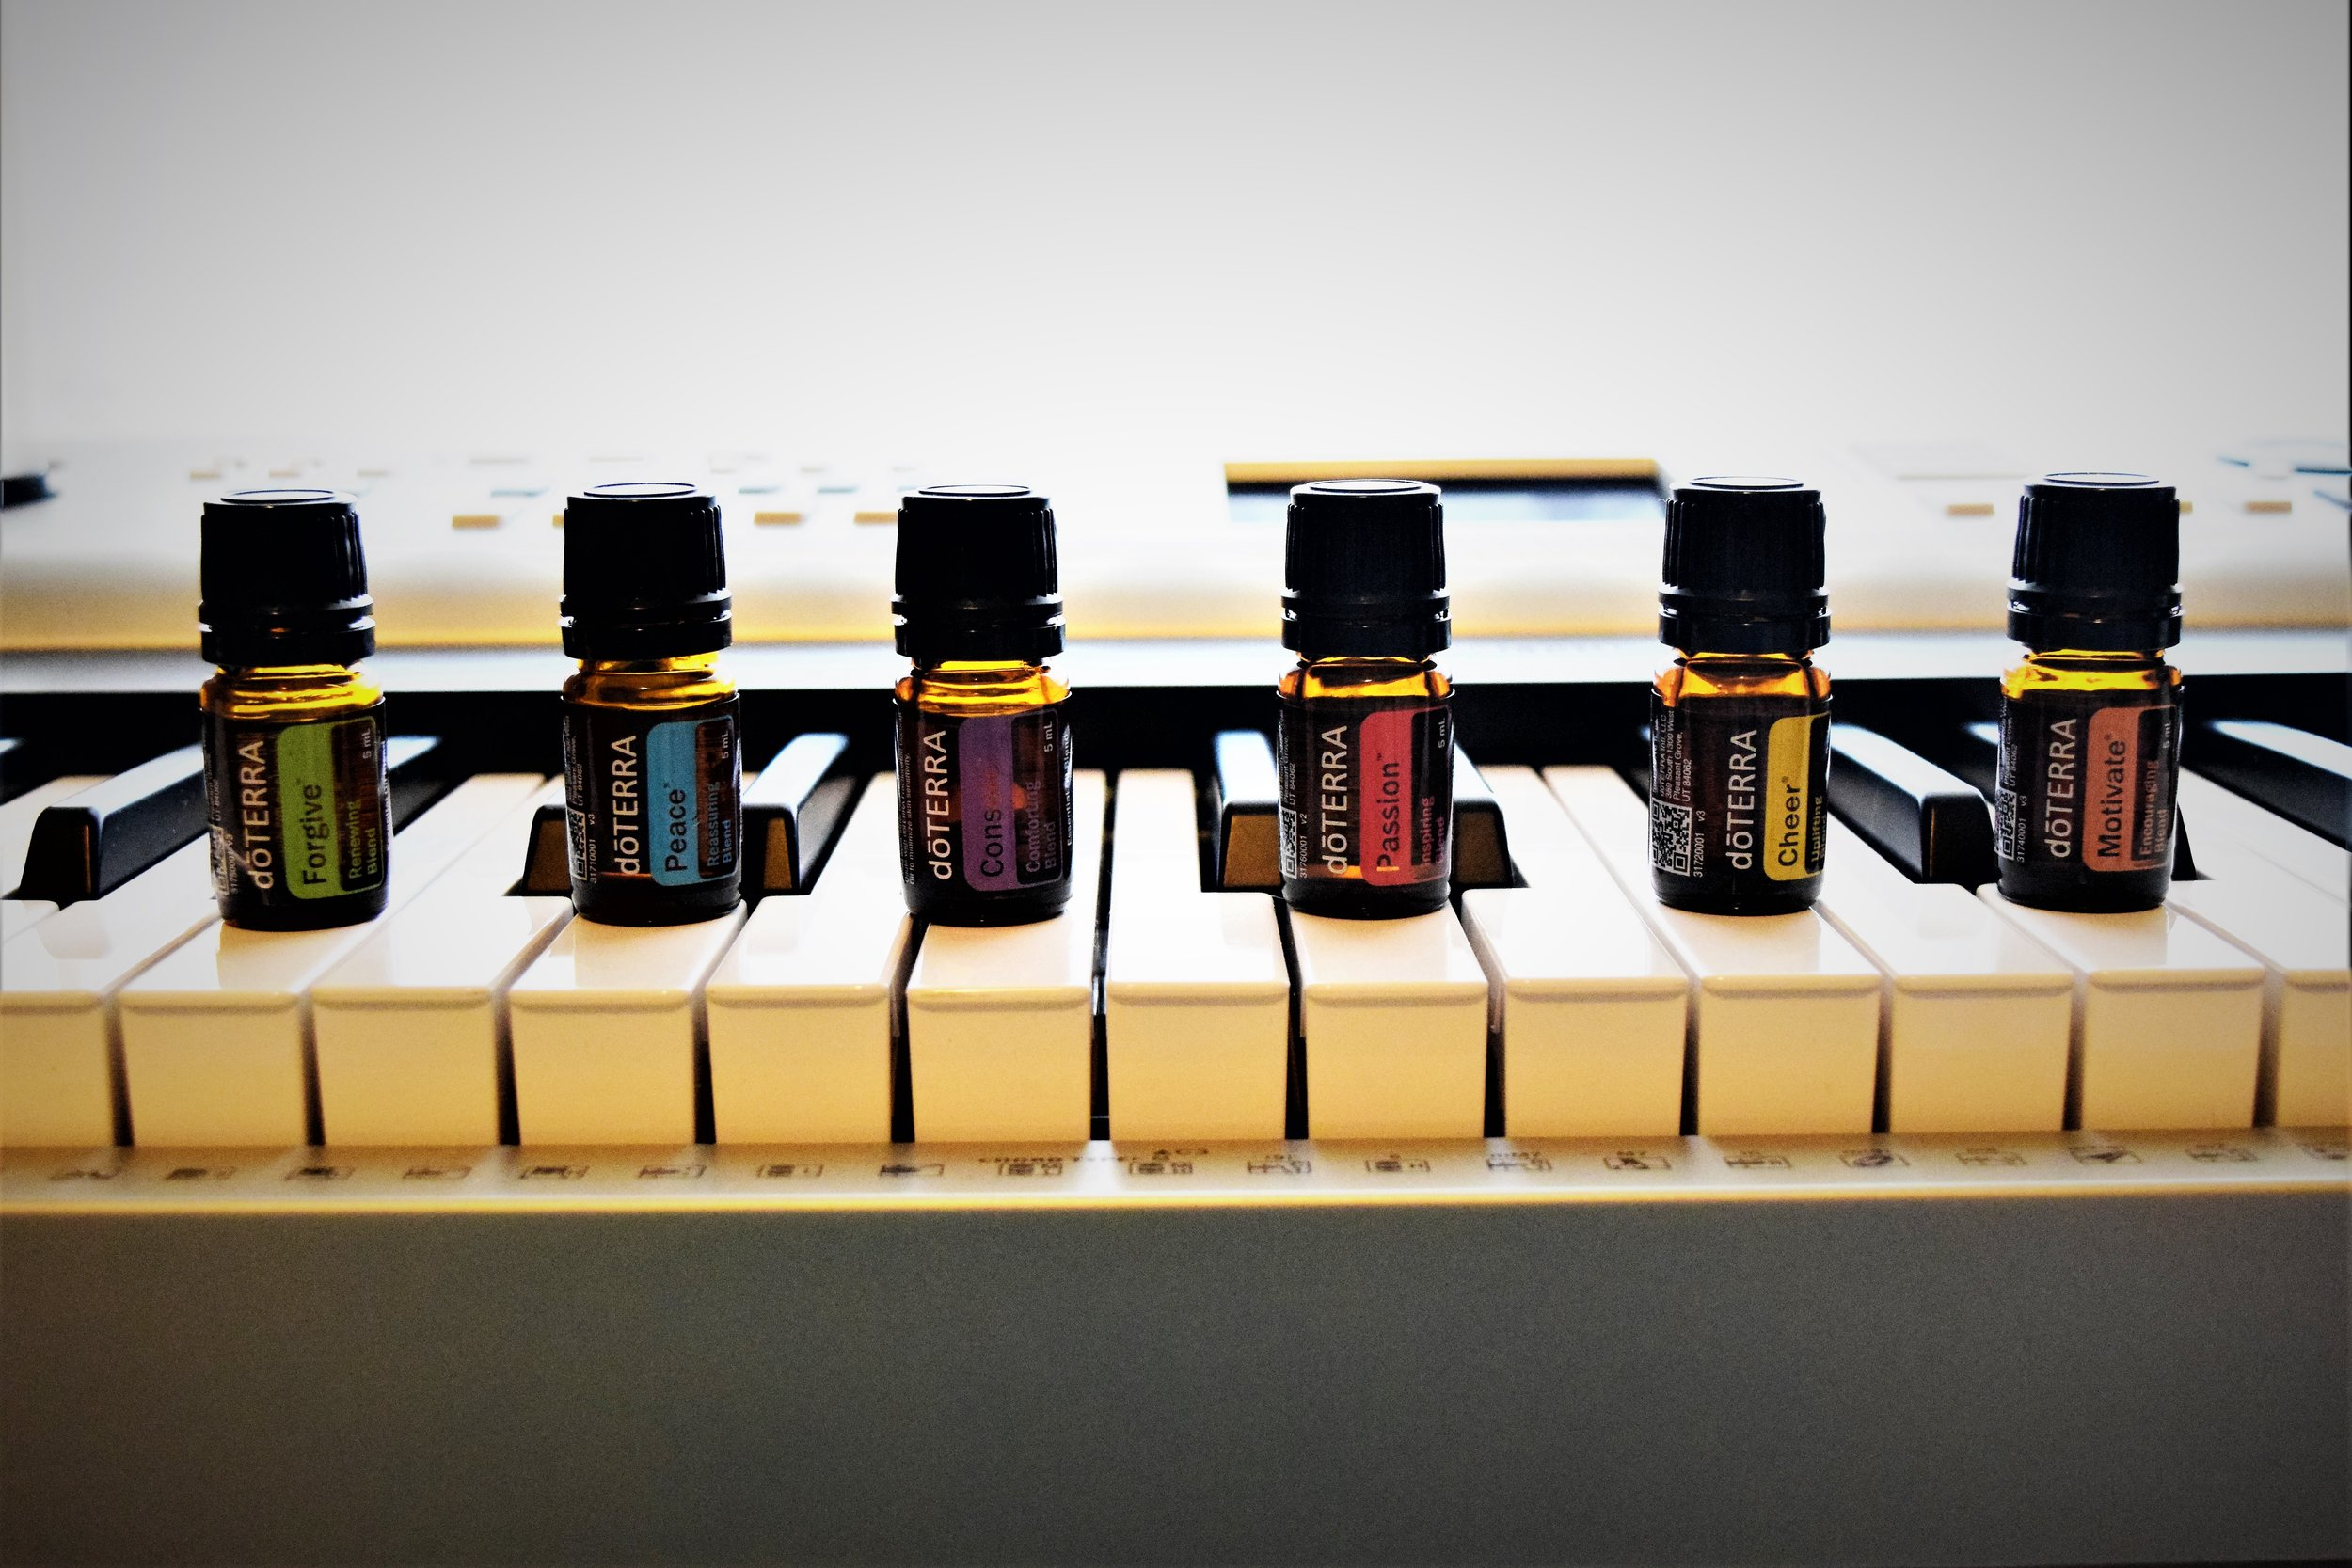 Love Essential Oils? - Join the Wild-Hearted Wellness team and spread the word about Natural Wellness products by becoming an advocate!